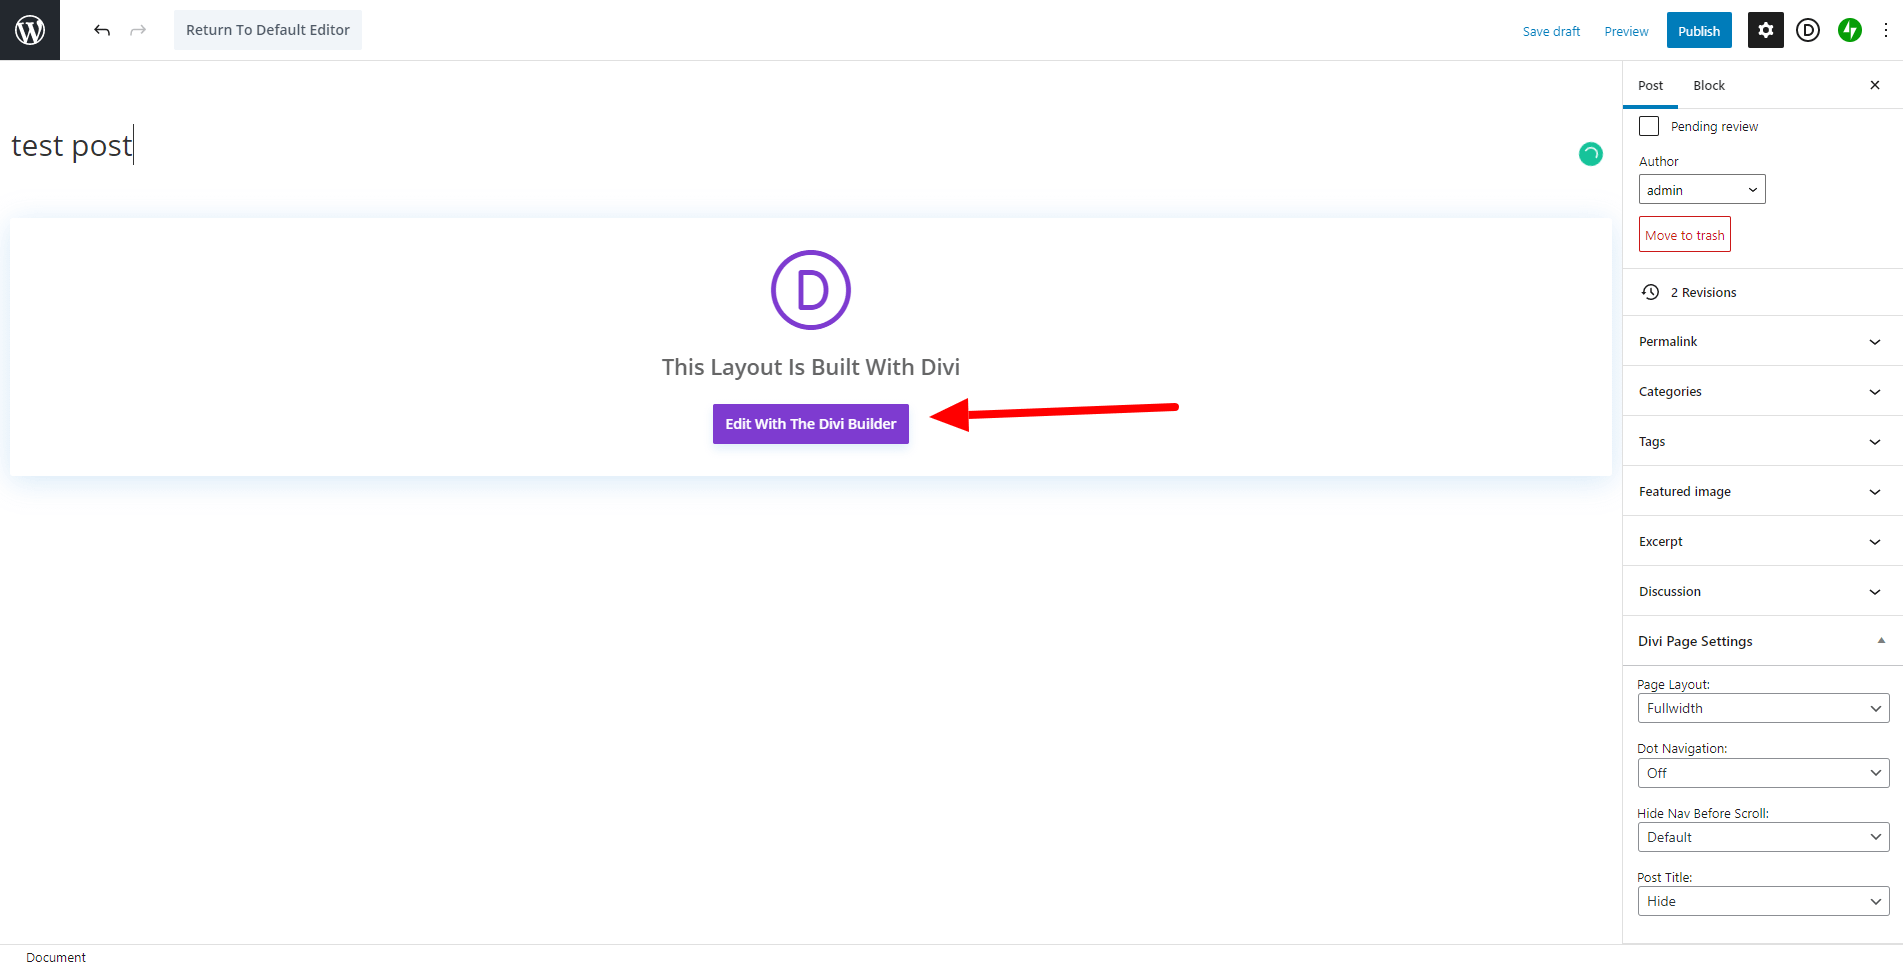 Location of Edit button